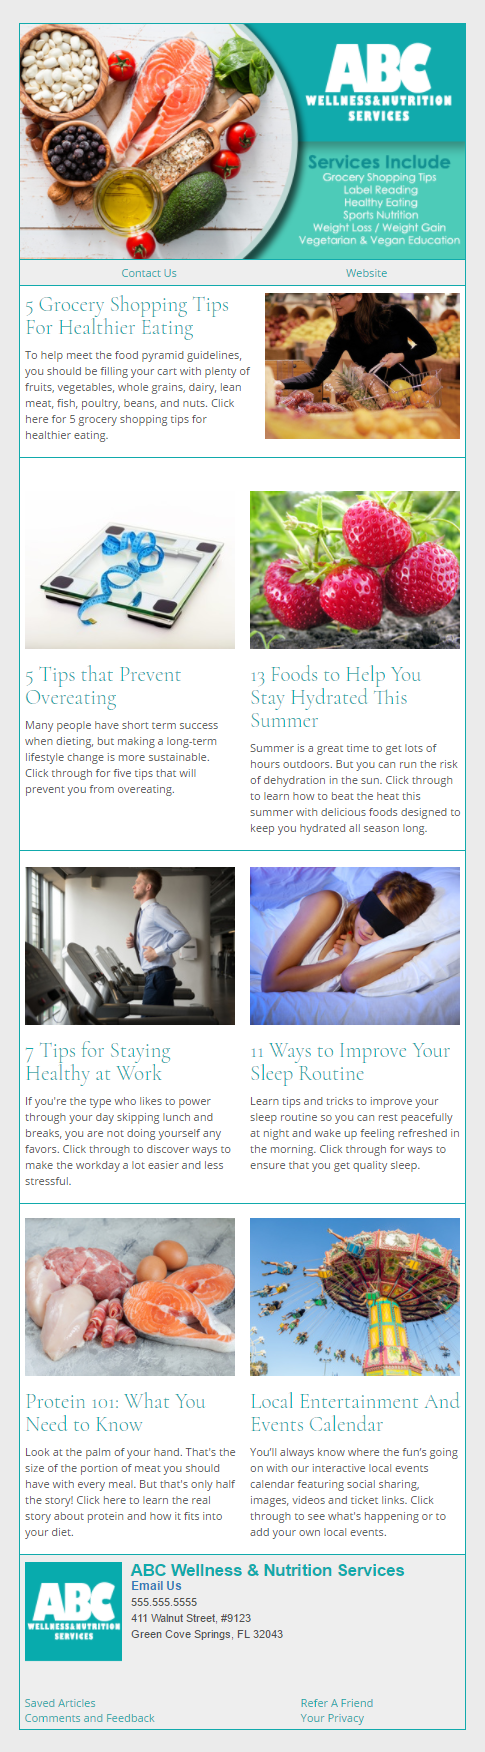 ABC Wellness And Nutrition Services - IndustryNewsletters Sample Email Newsletter